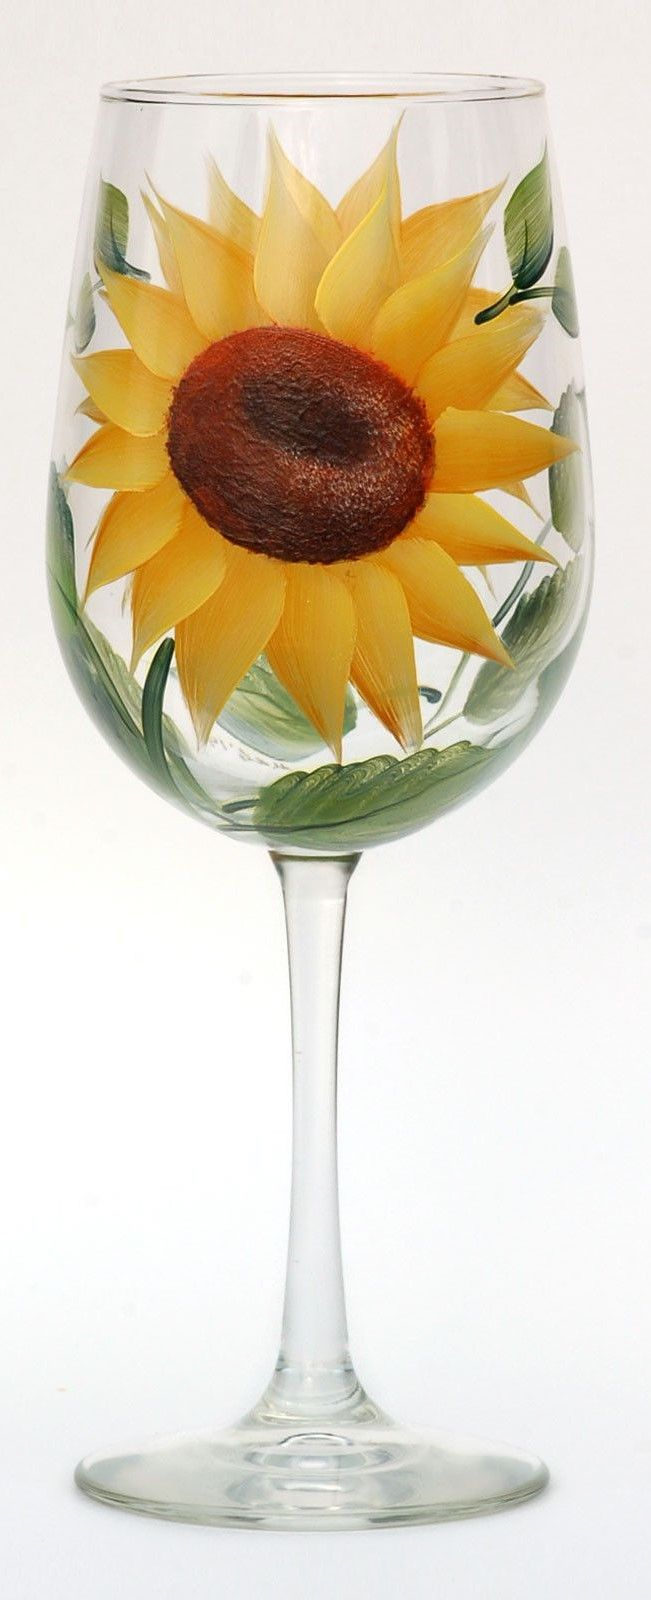 Yellow Sunflower Wine Glass Summer Spring Time Table Decor 15 ounces Hand Painted in the USA Sunflower Stemless Wine Glasses